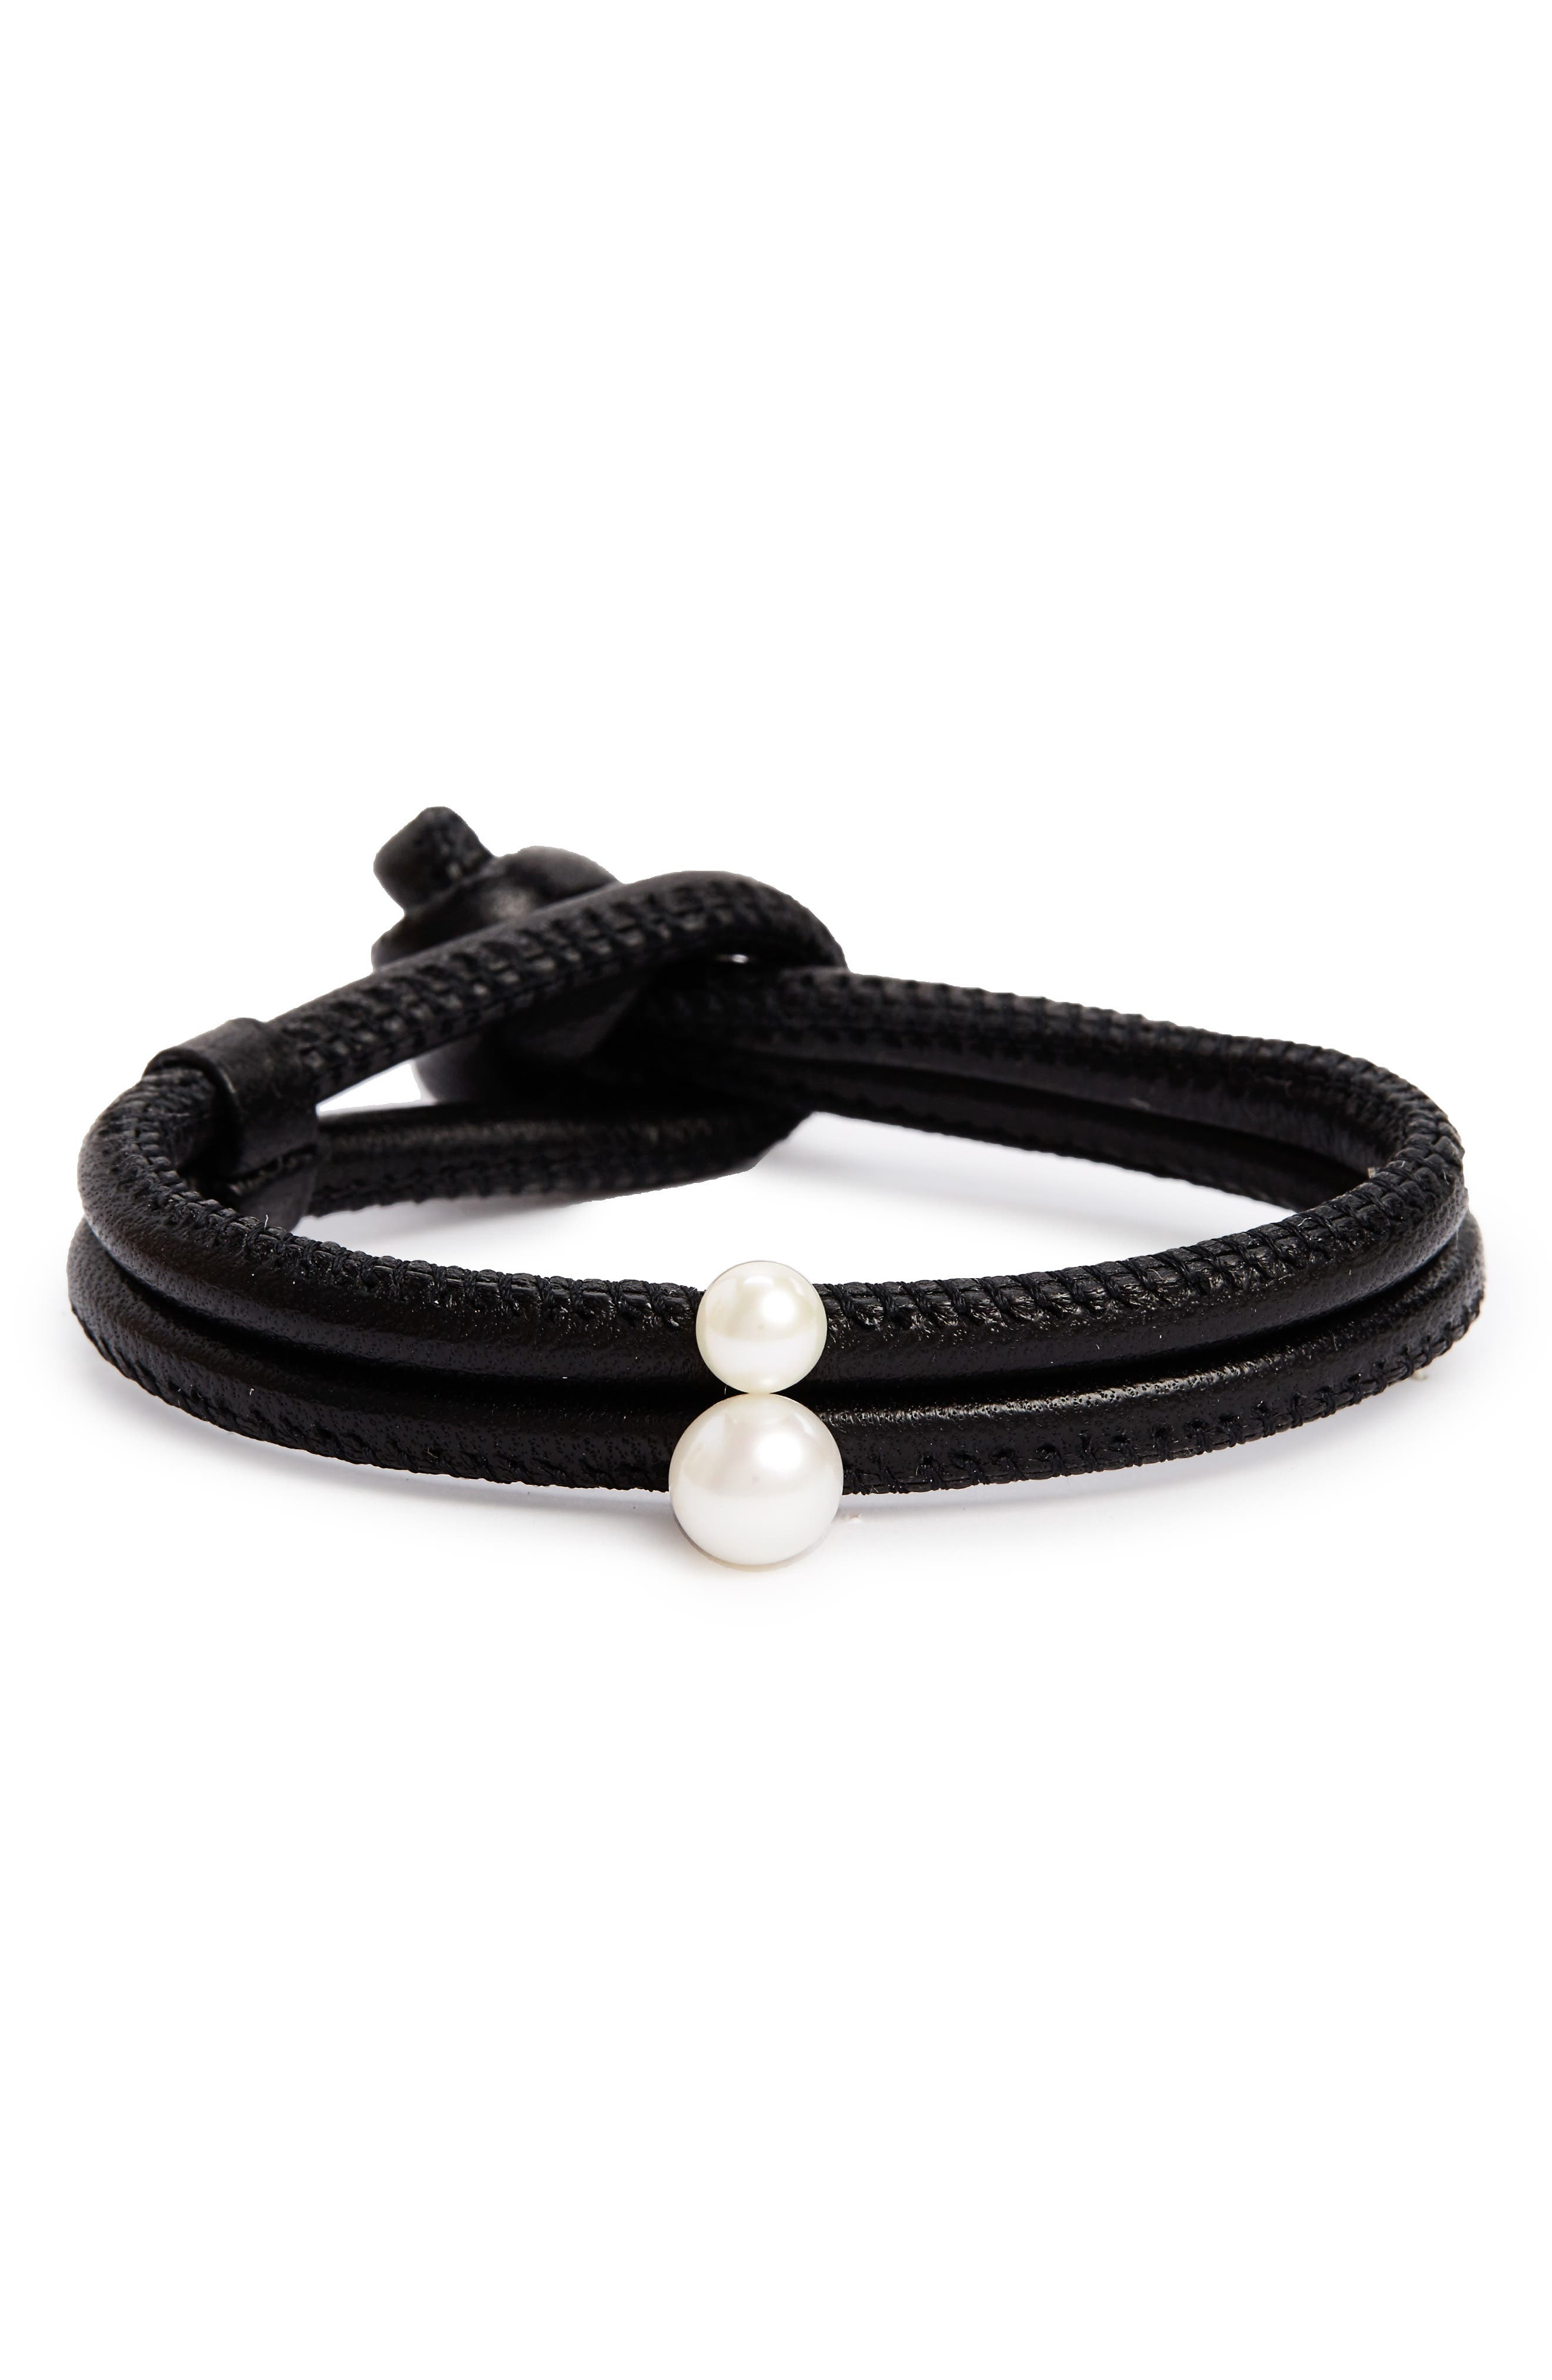 Leather & Akoya Pearl Bracelet,                             Main thumbnail 1, color,                             YELLOW GOLD/ WHITE PEARL